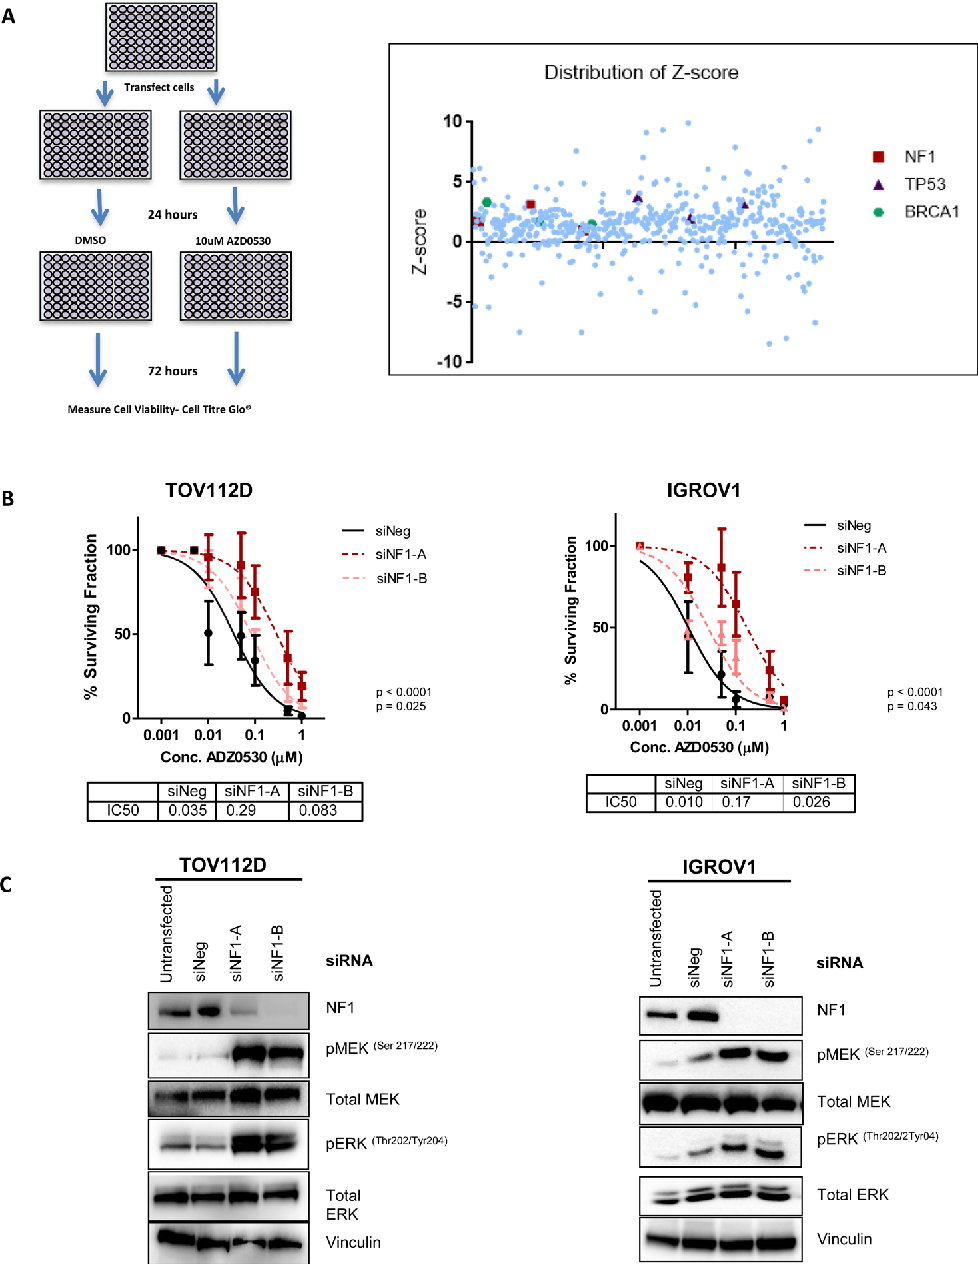 Pdf Activation Of Mapk Signalling Results In Resistance To Saracatinib Azd0530 In Ovarian Cancer Semantic Scholar